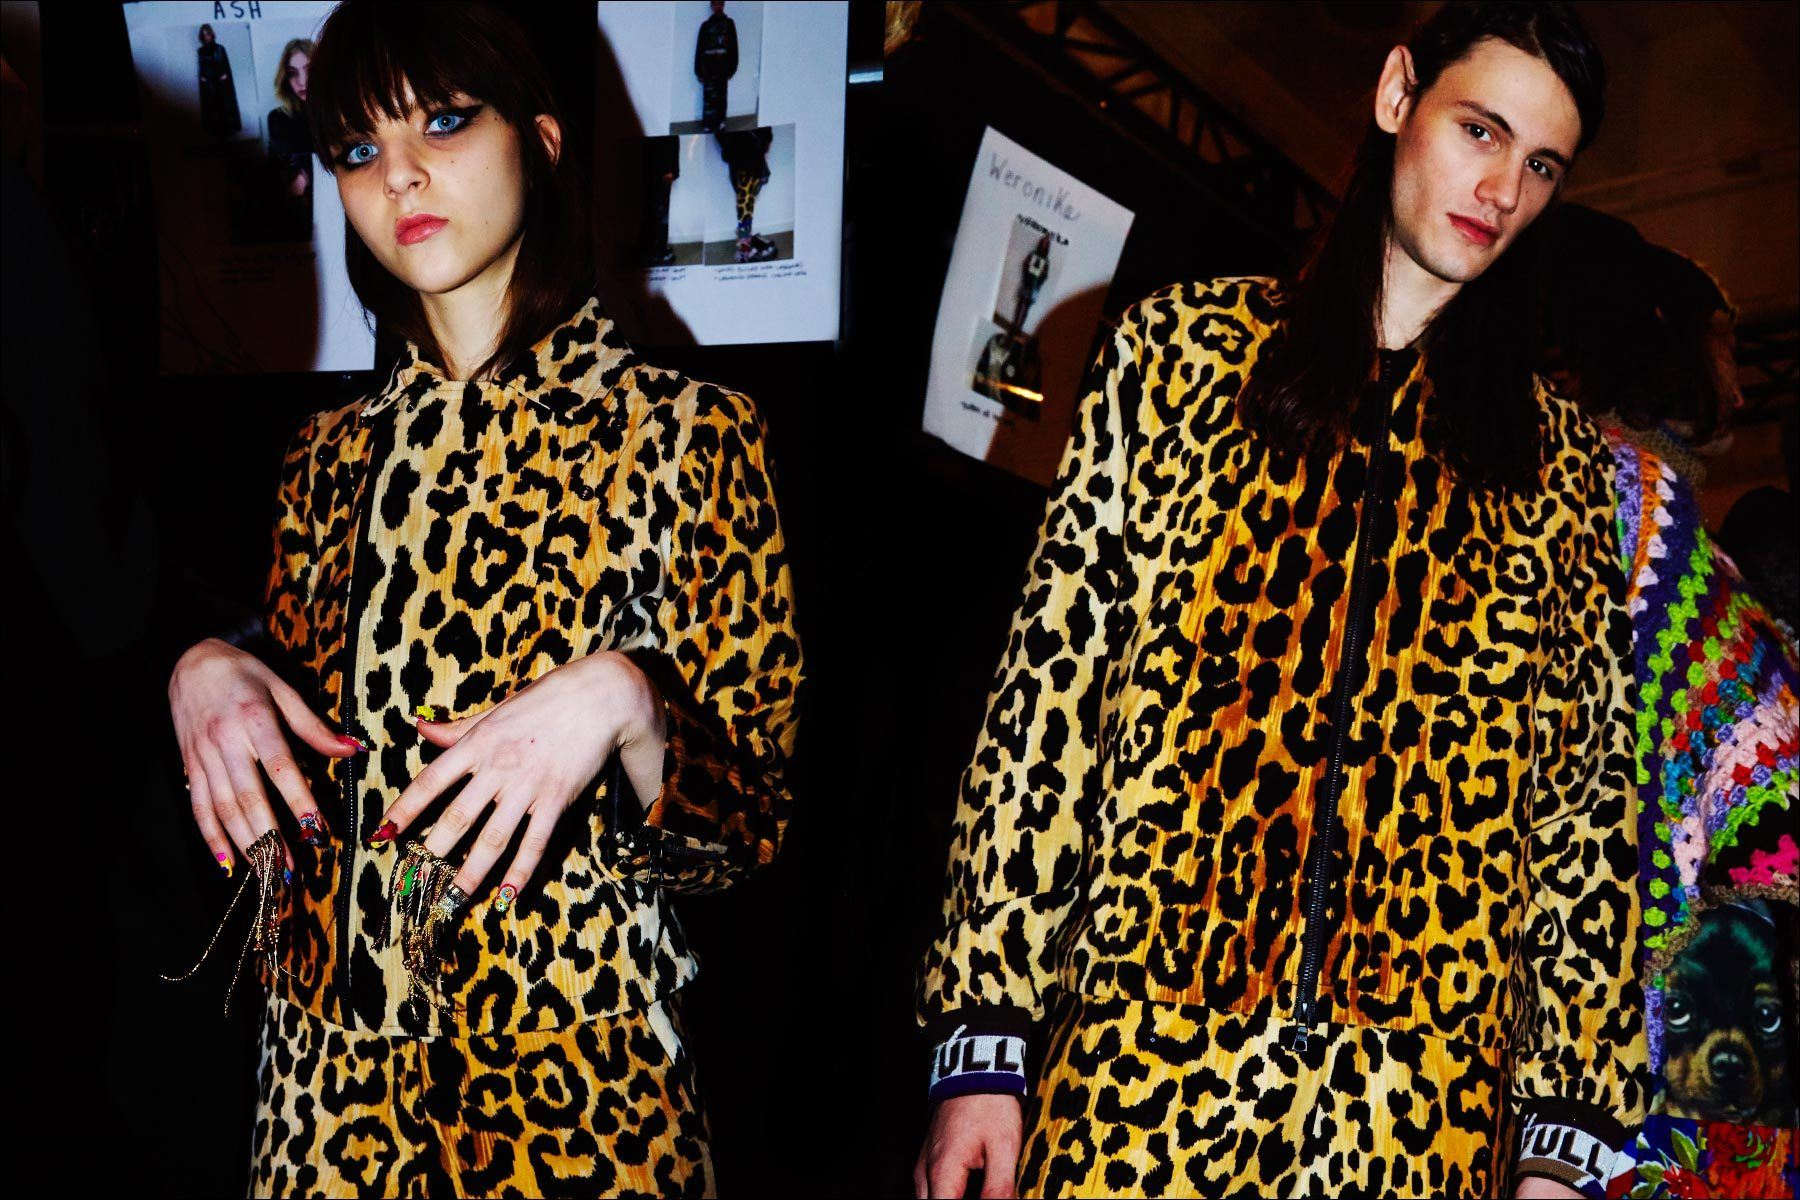 Models Masha Tsarykevich & Gustavo Sanches photographed in leopard looks from the Libertine Fall/Winter show. Photographed by Alexander Thompson for Ponyboy magazine NY.